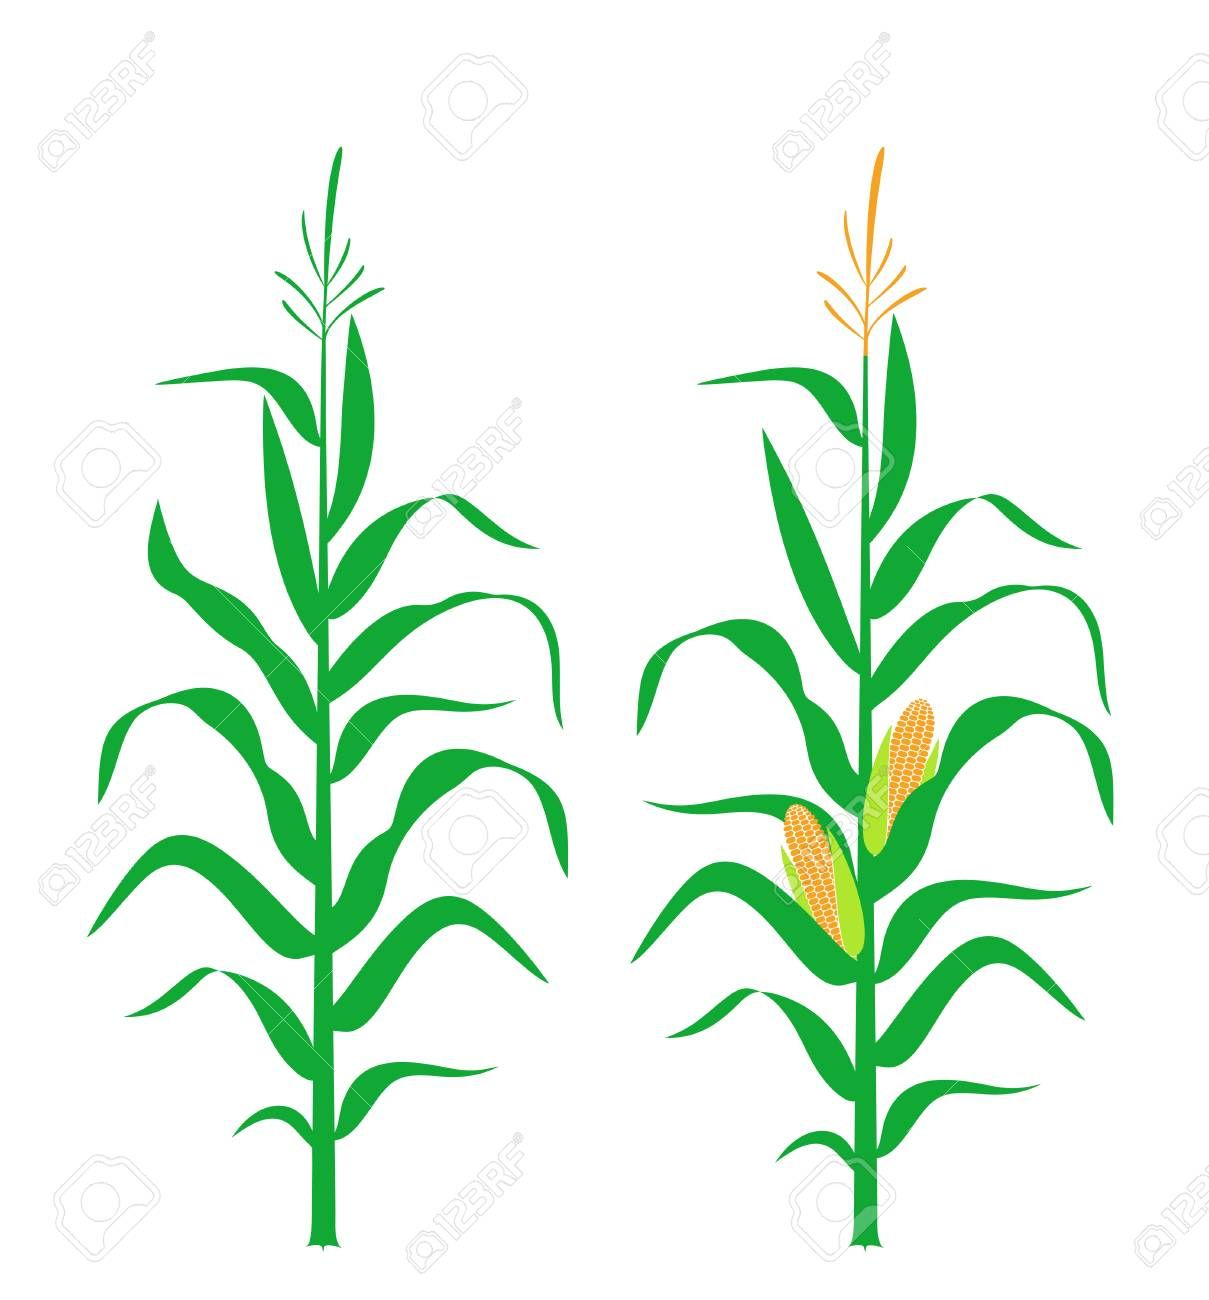 Corn Stalk : This is the official beginning of the agriculture series.